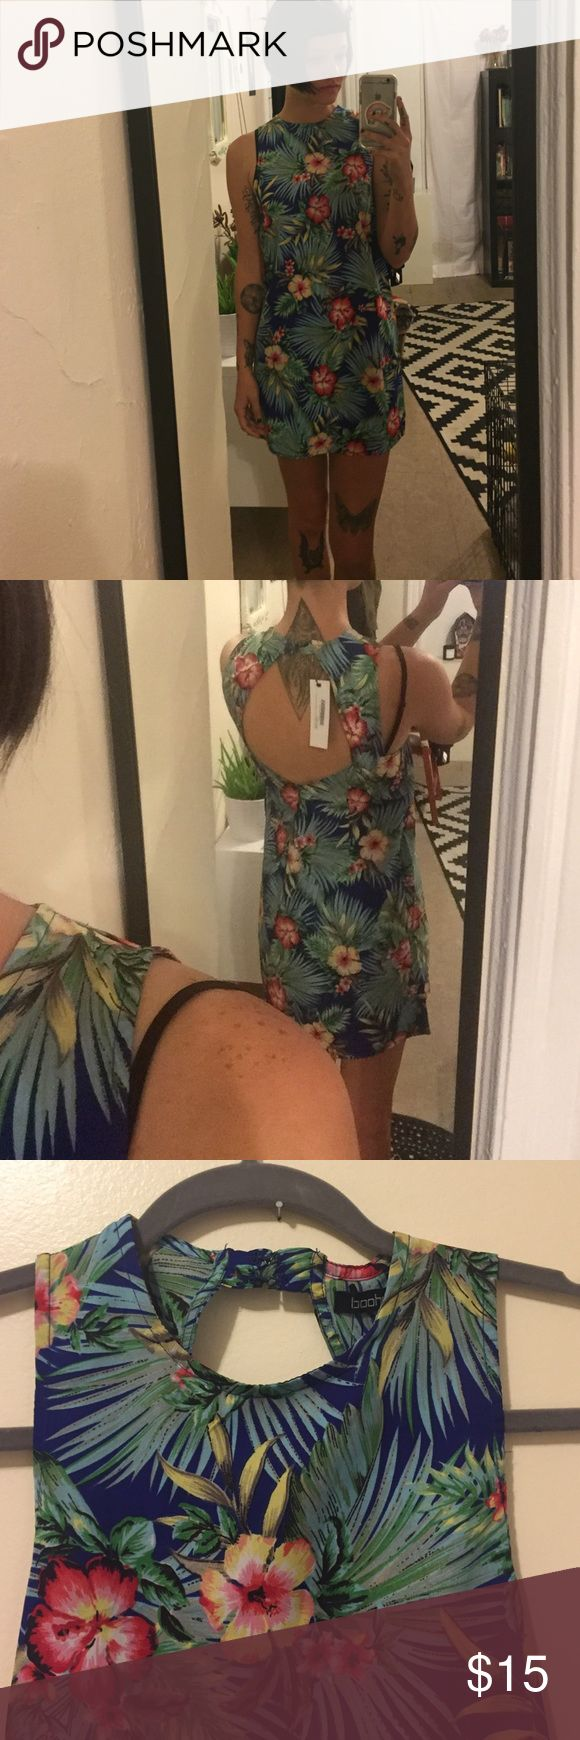 Hawaiian print dress NWT Hawaiian style dress. Cut out in the back. Two clasps at back if neck. Any questions please ask! US size 4. Boohoo Dresses